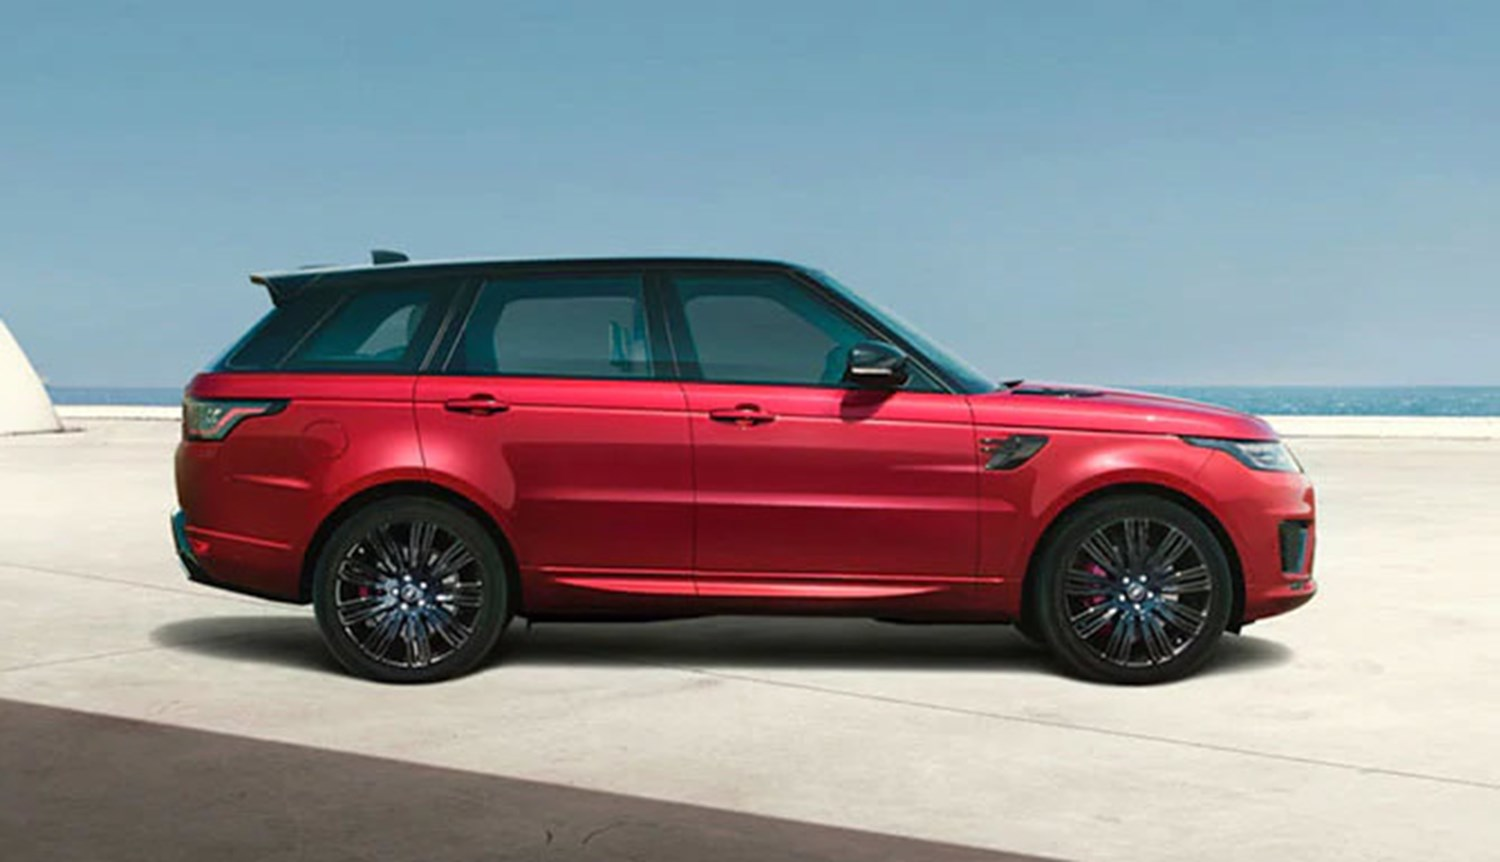 Range Rover in Red on concrete